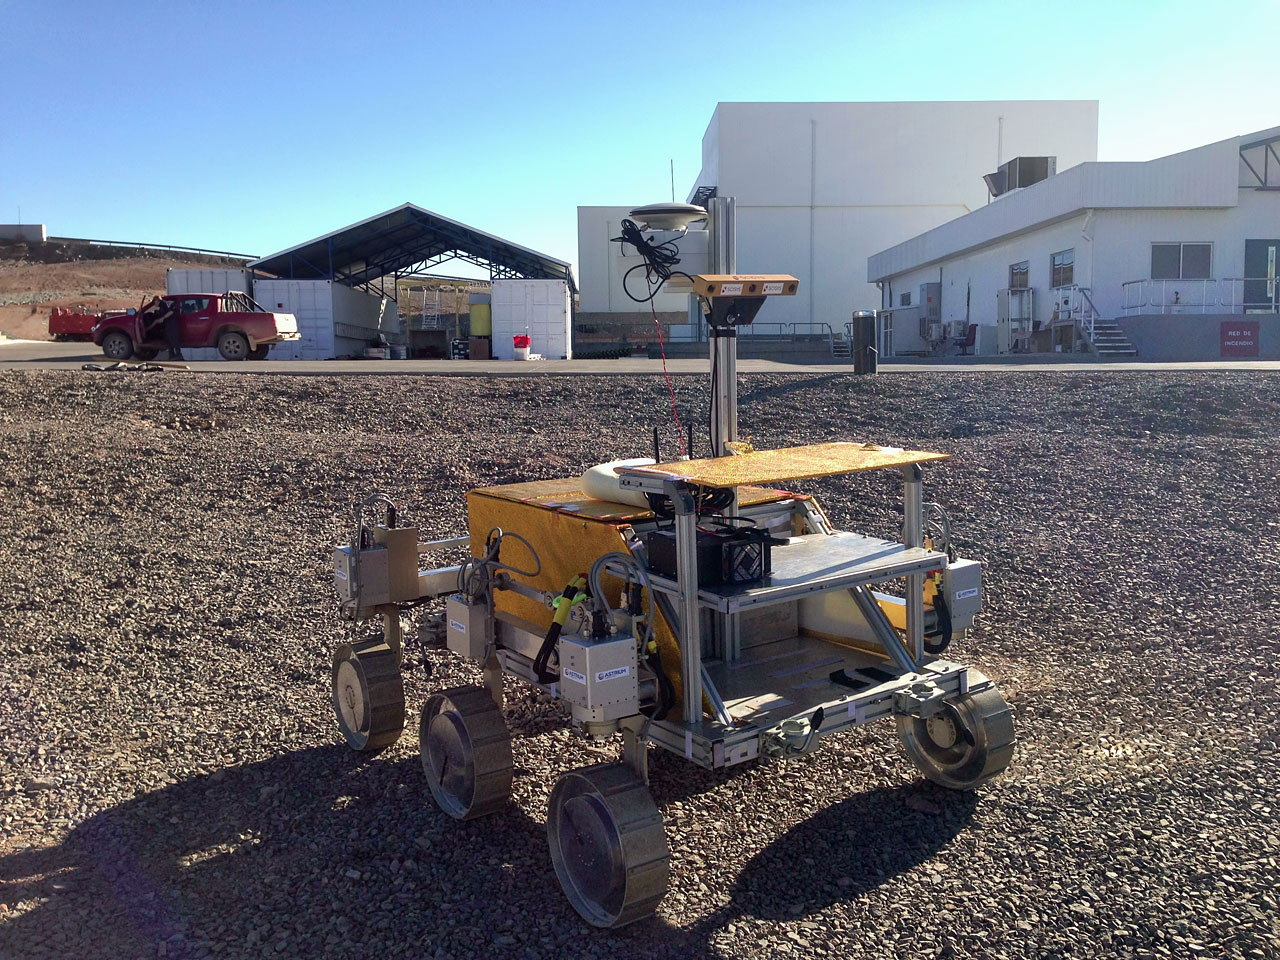 ESA's Rover Tested